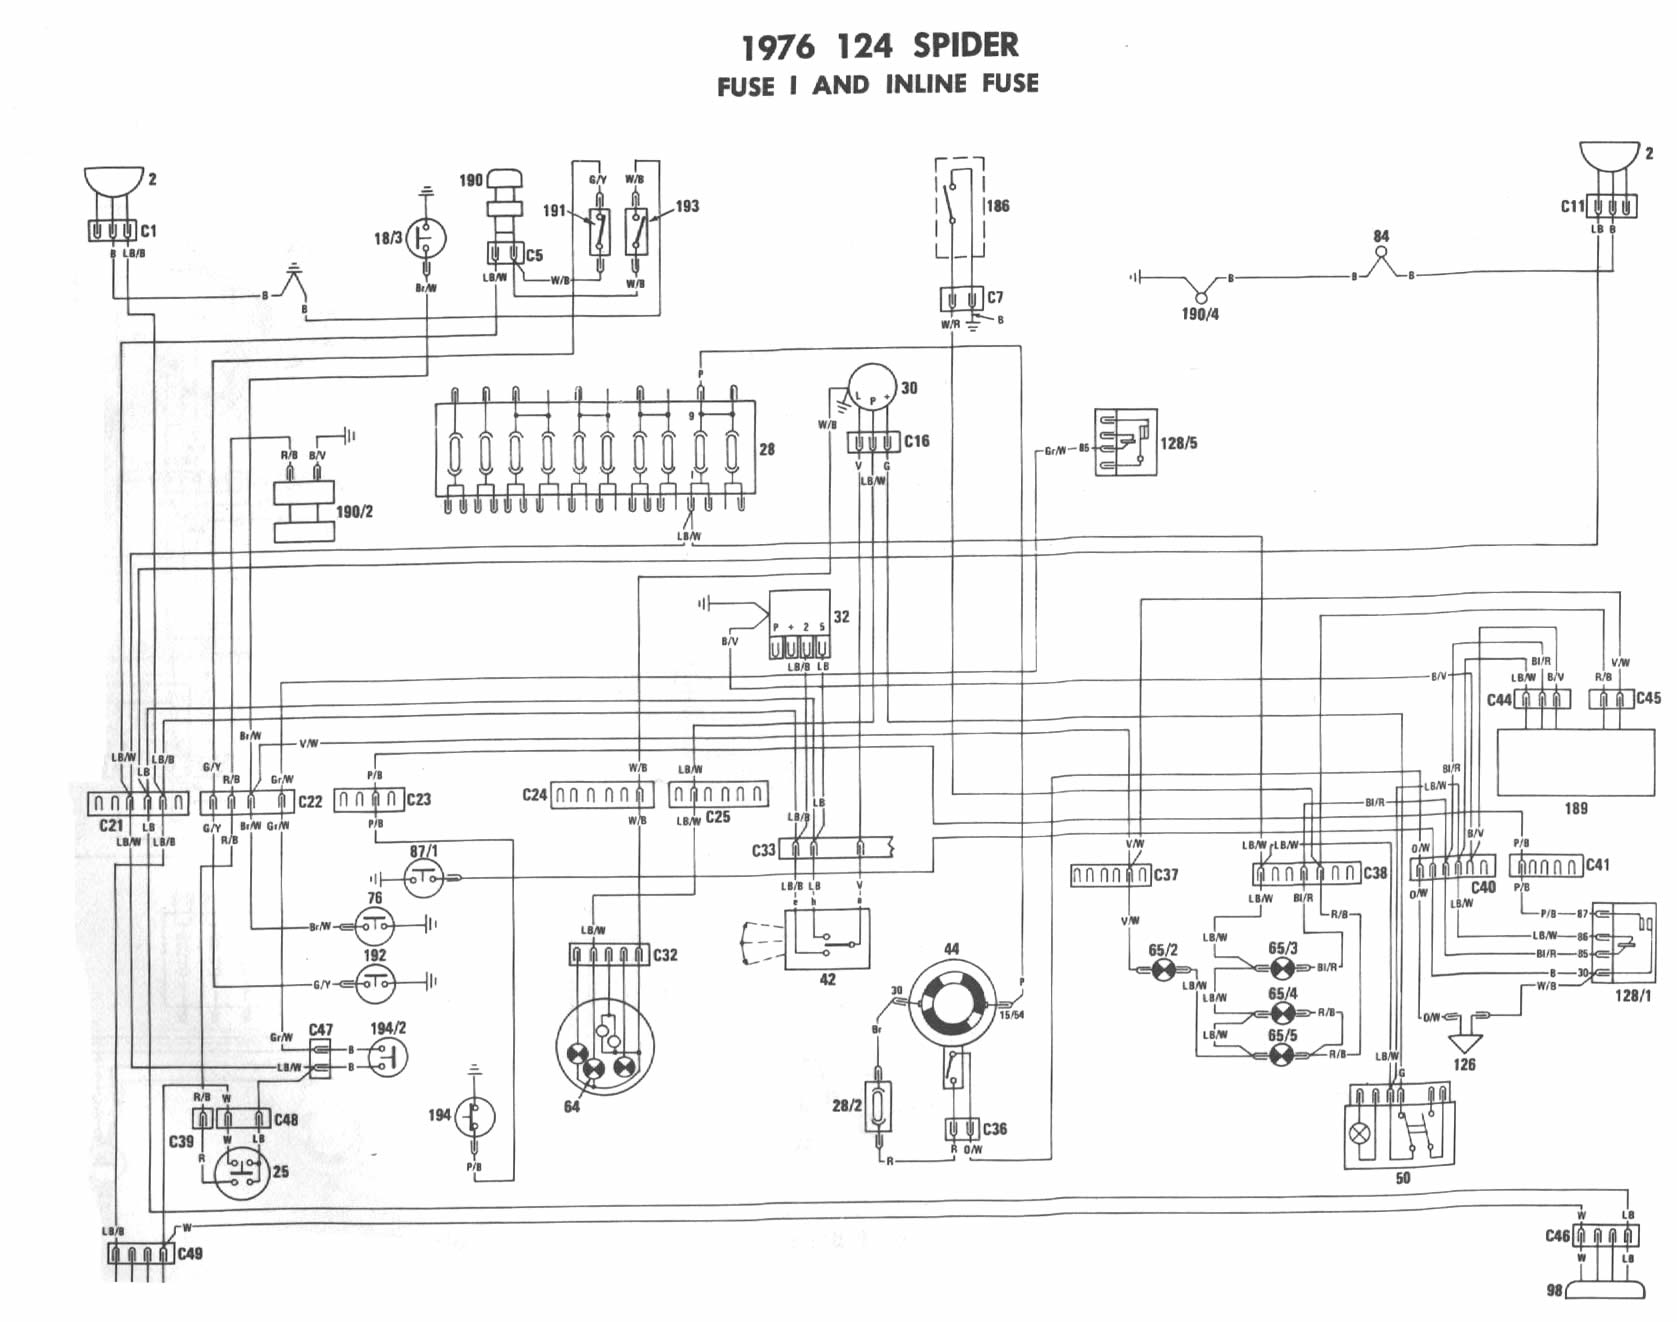 hight resolution of 1976 chevy plug wiring diagram schematic wiring library 1976 trans am wiring diagram 1976 chevy plug wiring diagram schematic